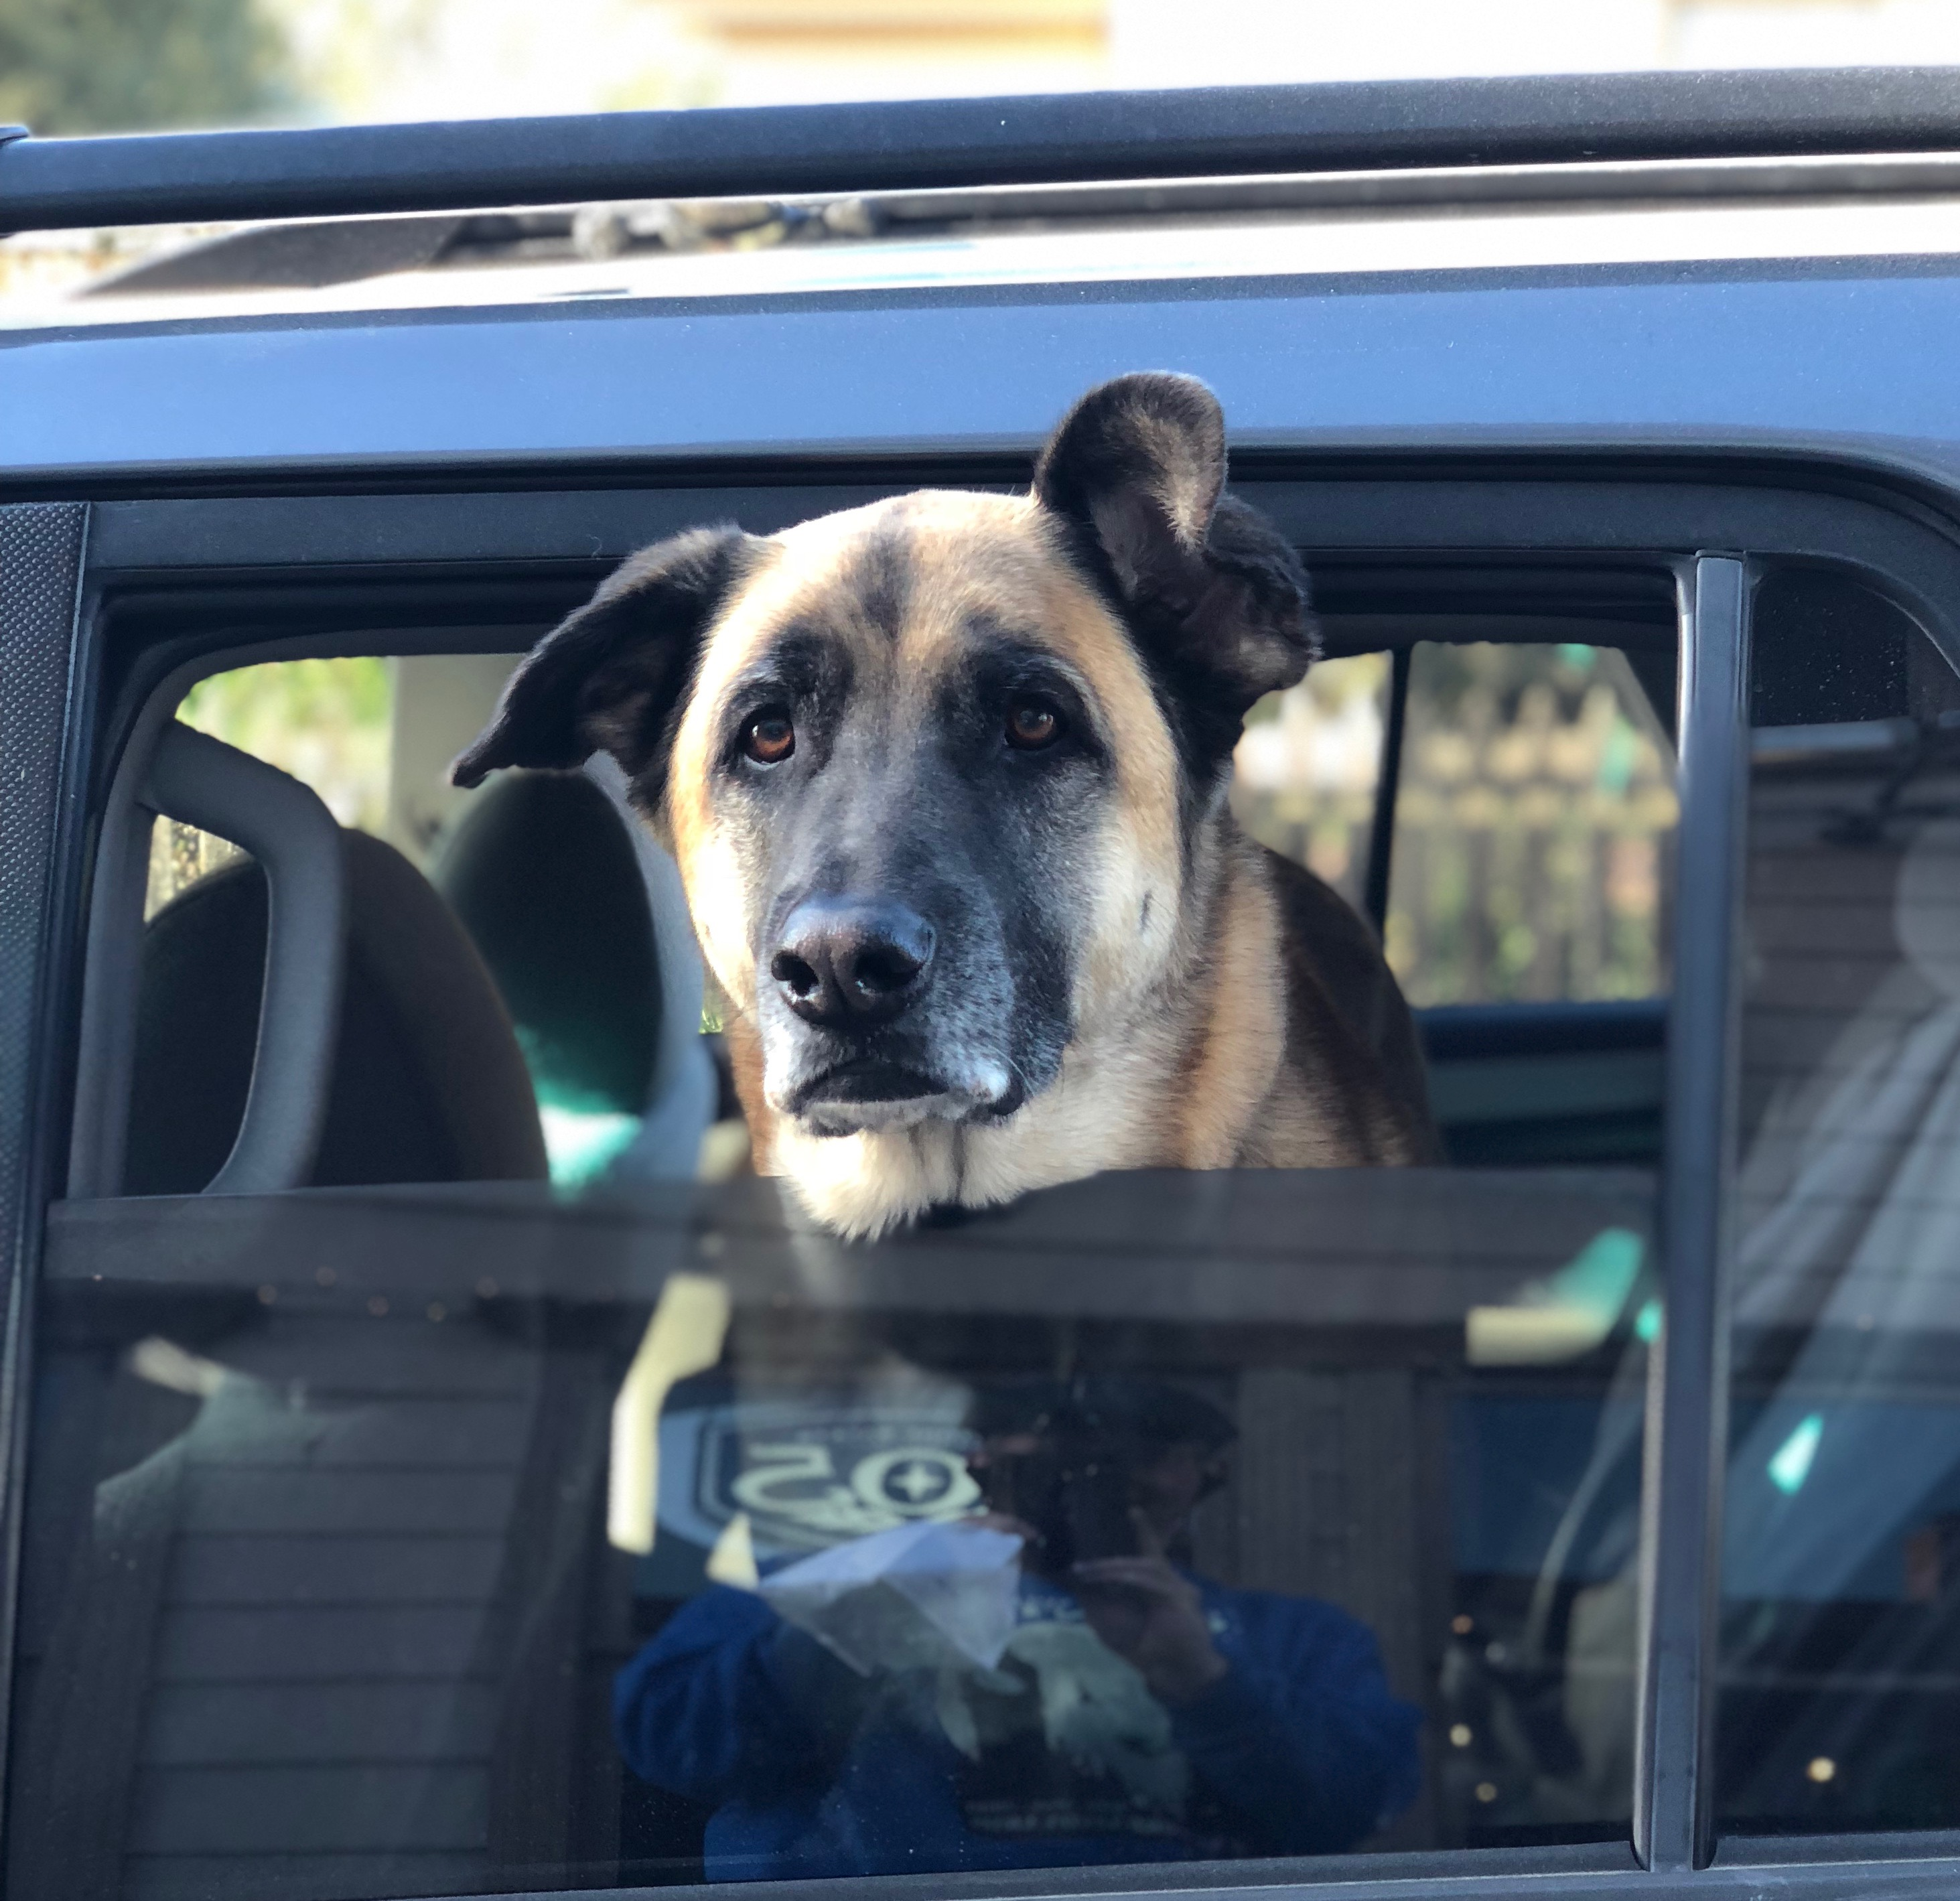 German Shepherd Mix With Half Floppy Ears Sticking His Head Out Of A Car Window